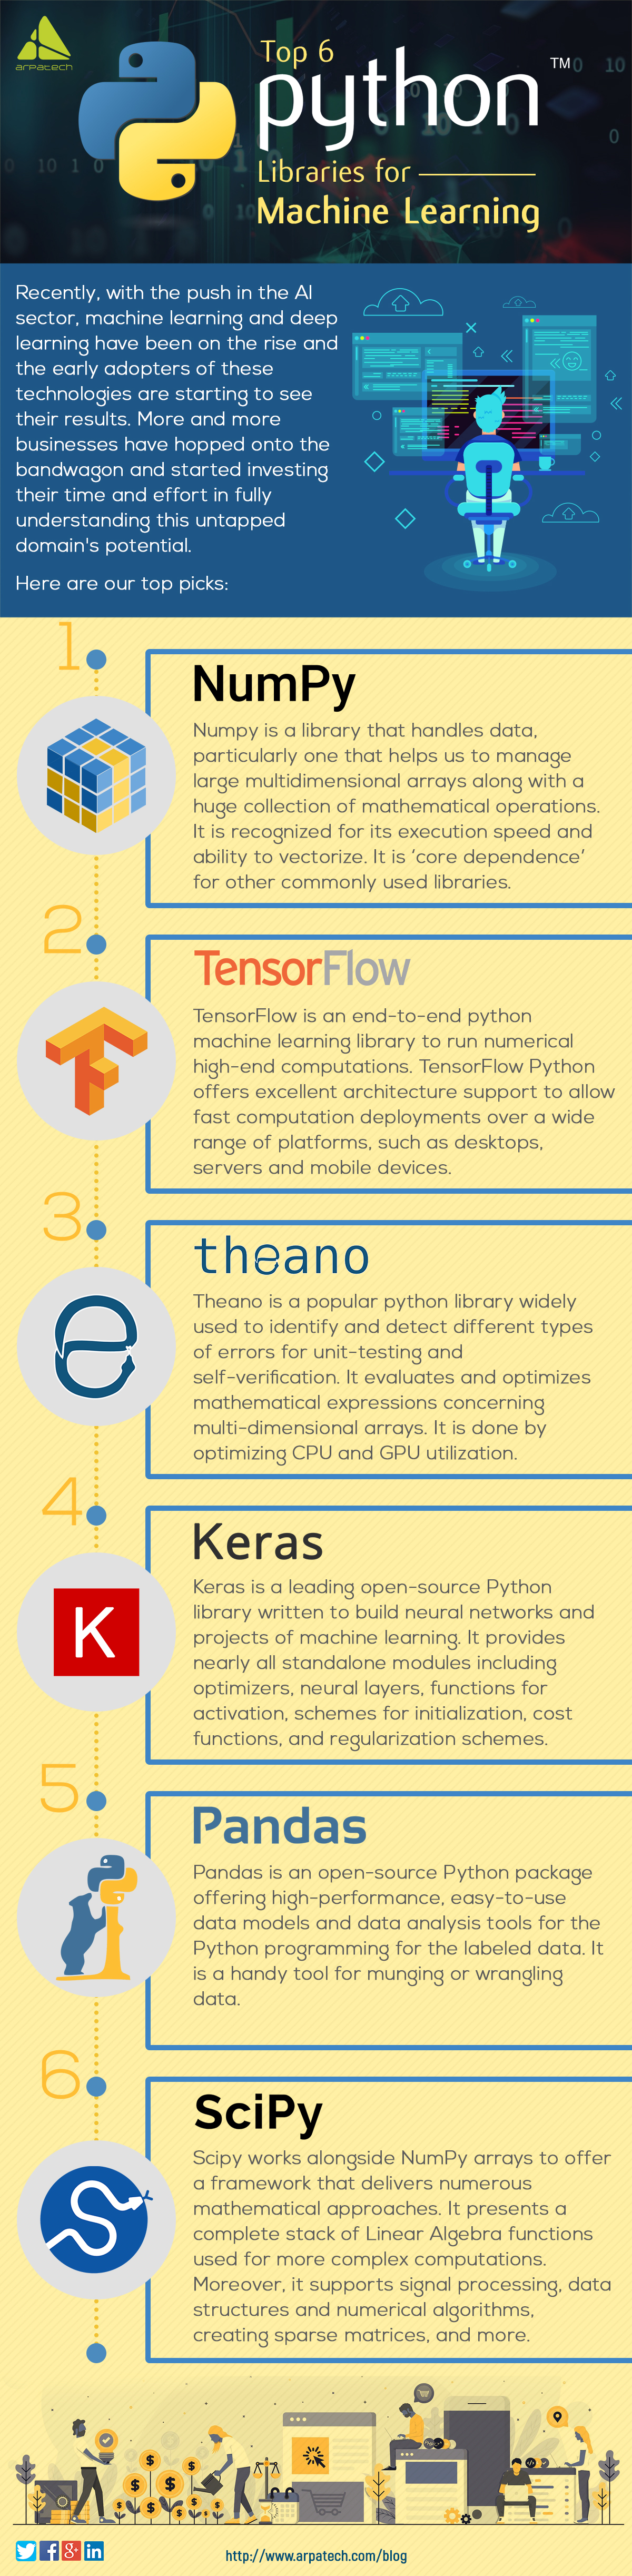 python-libraries-for-machine-learning-infographics